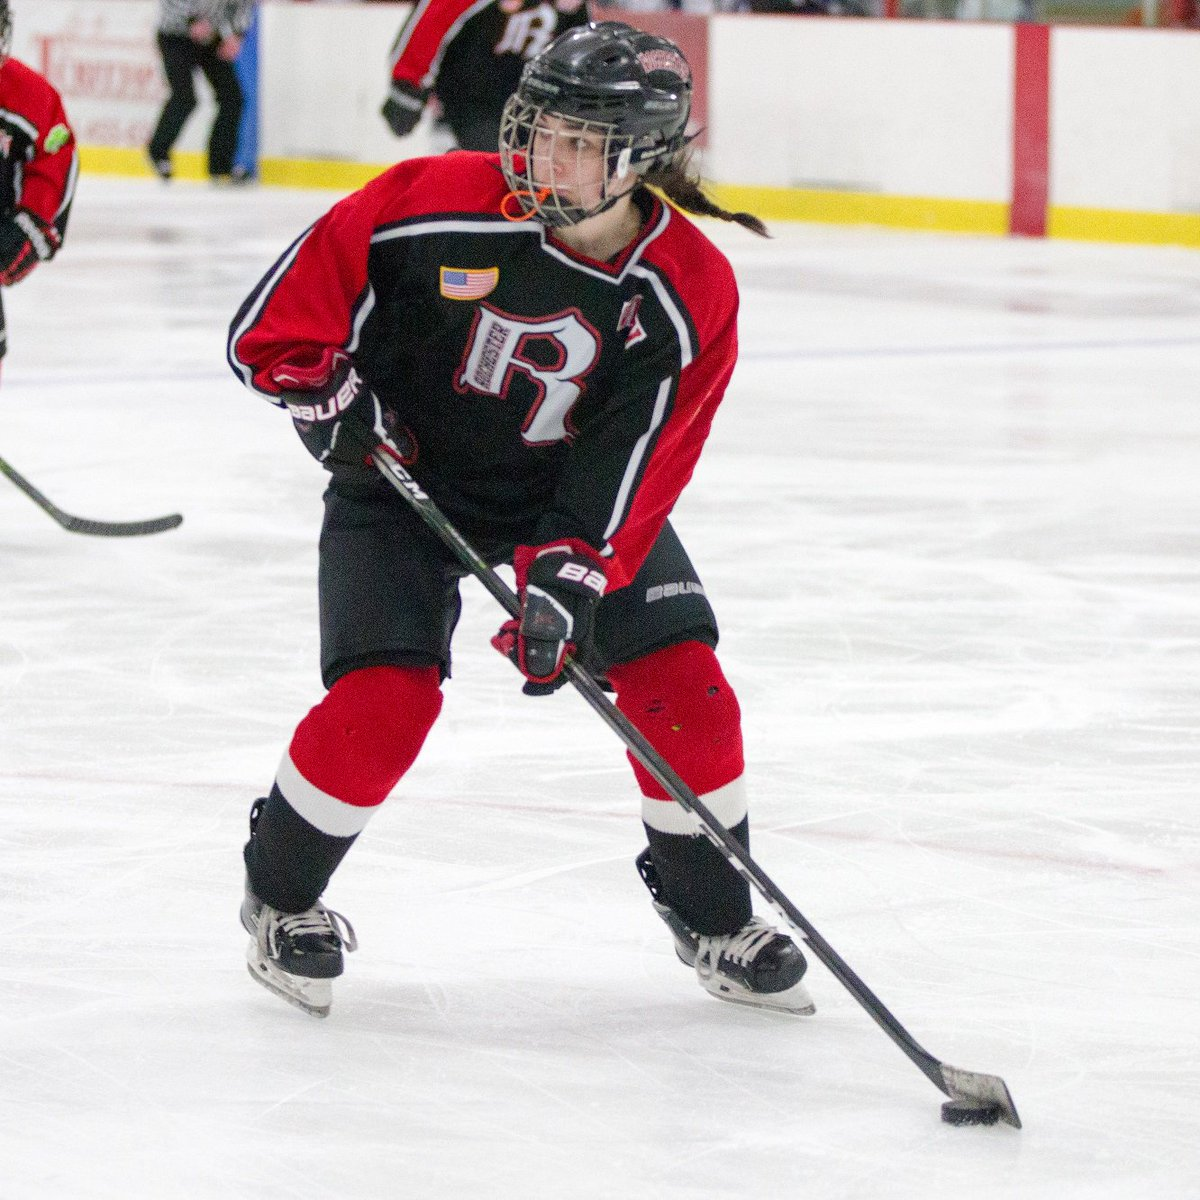 Should My Daughter Play Peewee or 12U? @Slykie shares insight on key points for families & associations to consider: ow.ly/S4Cg50w5Tzj